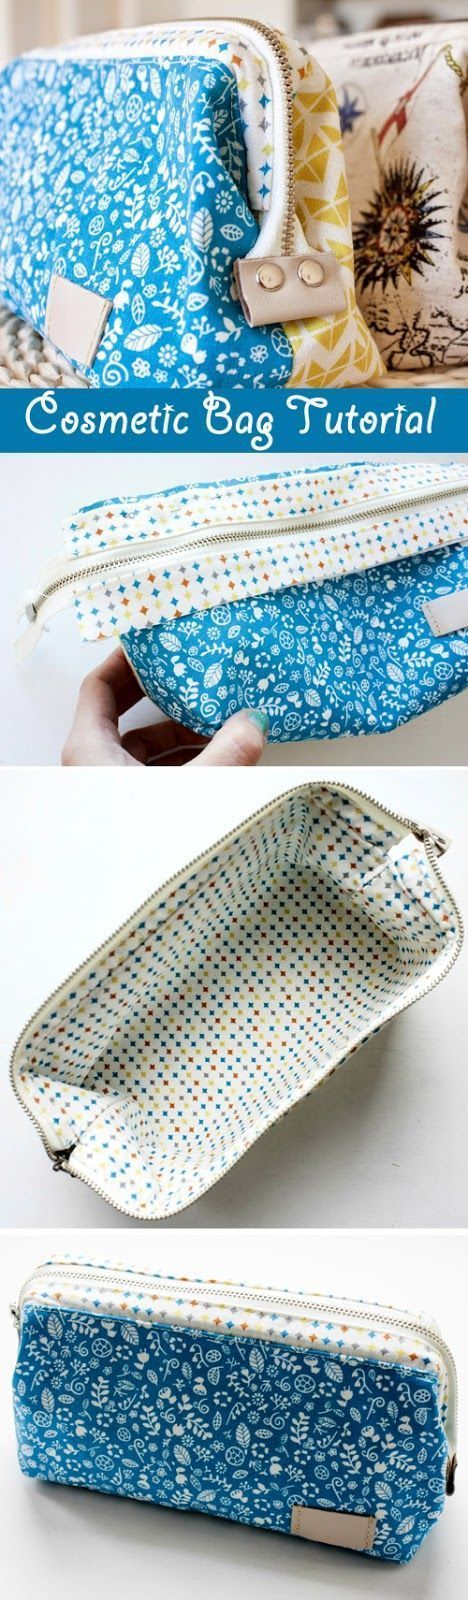 How to sew a cosmetics bag with a frame. Tutorial in pictures. http://www.handmadiya.com/2015/09/cosmetic-bag-with-frame-tutorial.html - bags, messenger, pack, book, ysl, lunch bag *ad